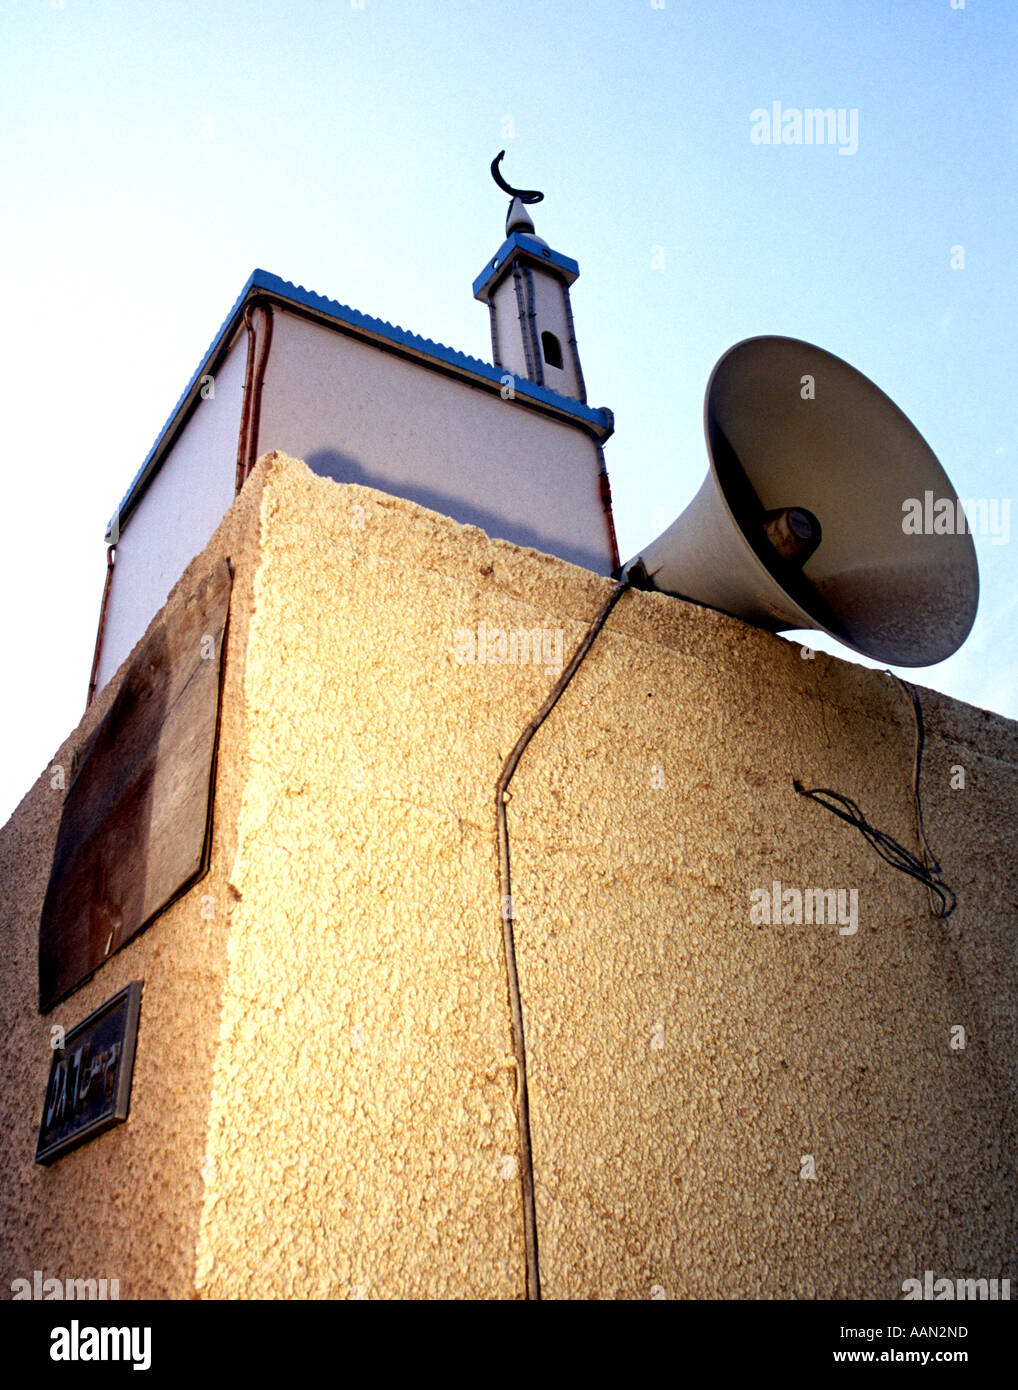 A mosque in Doha Qatar Arabian gulf Middle East - Stock Image